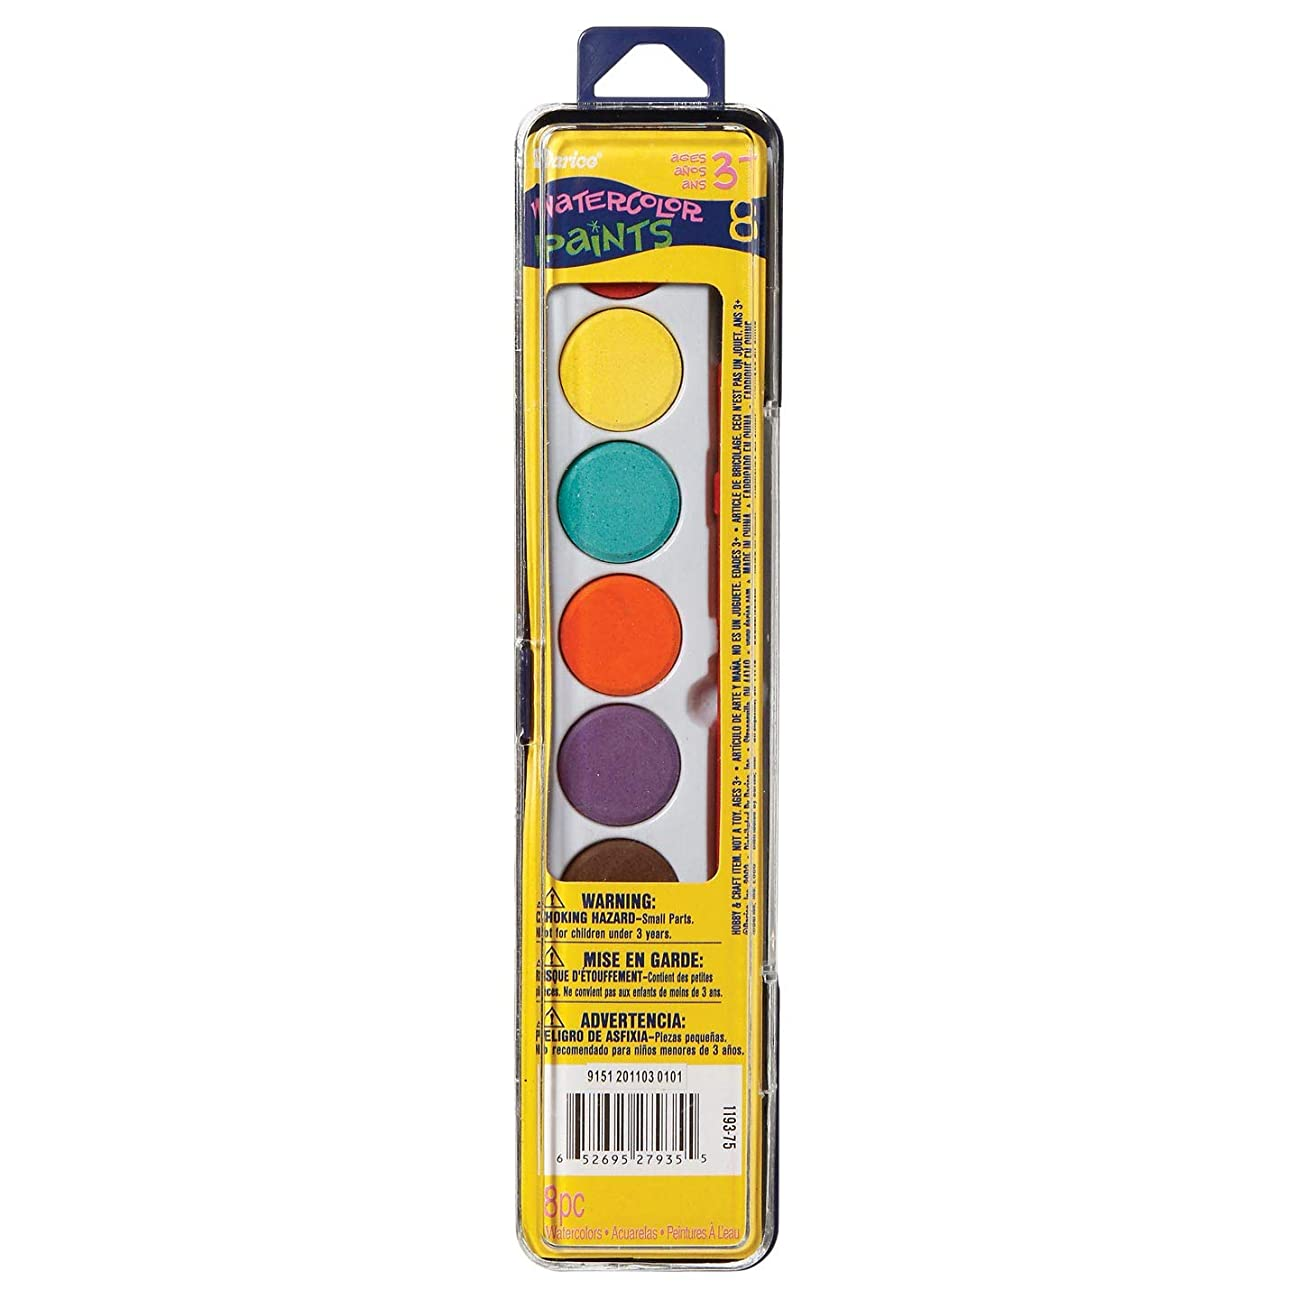 Bulk Buy: Darice Crafts for Kids Watercolor Paint Set with Brush 8 color (3-Pack) 1193-75